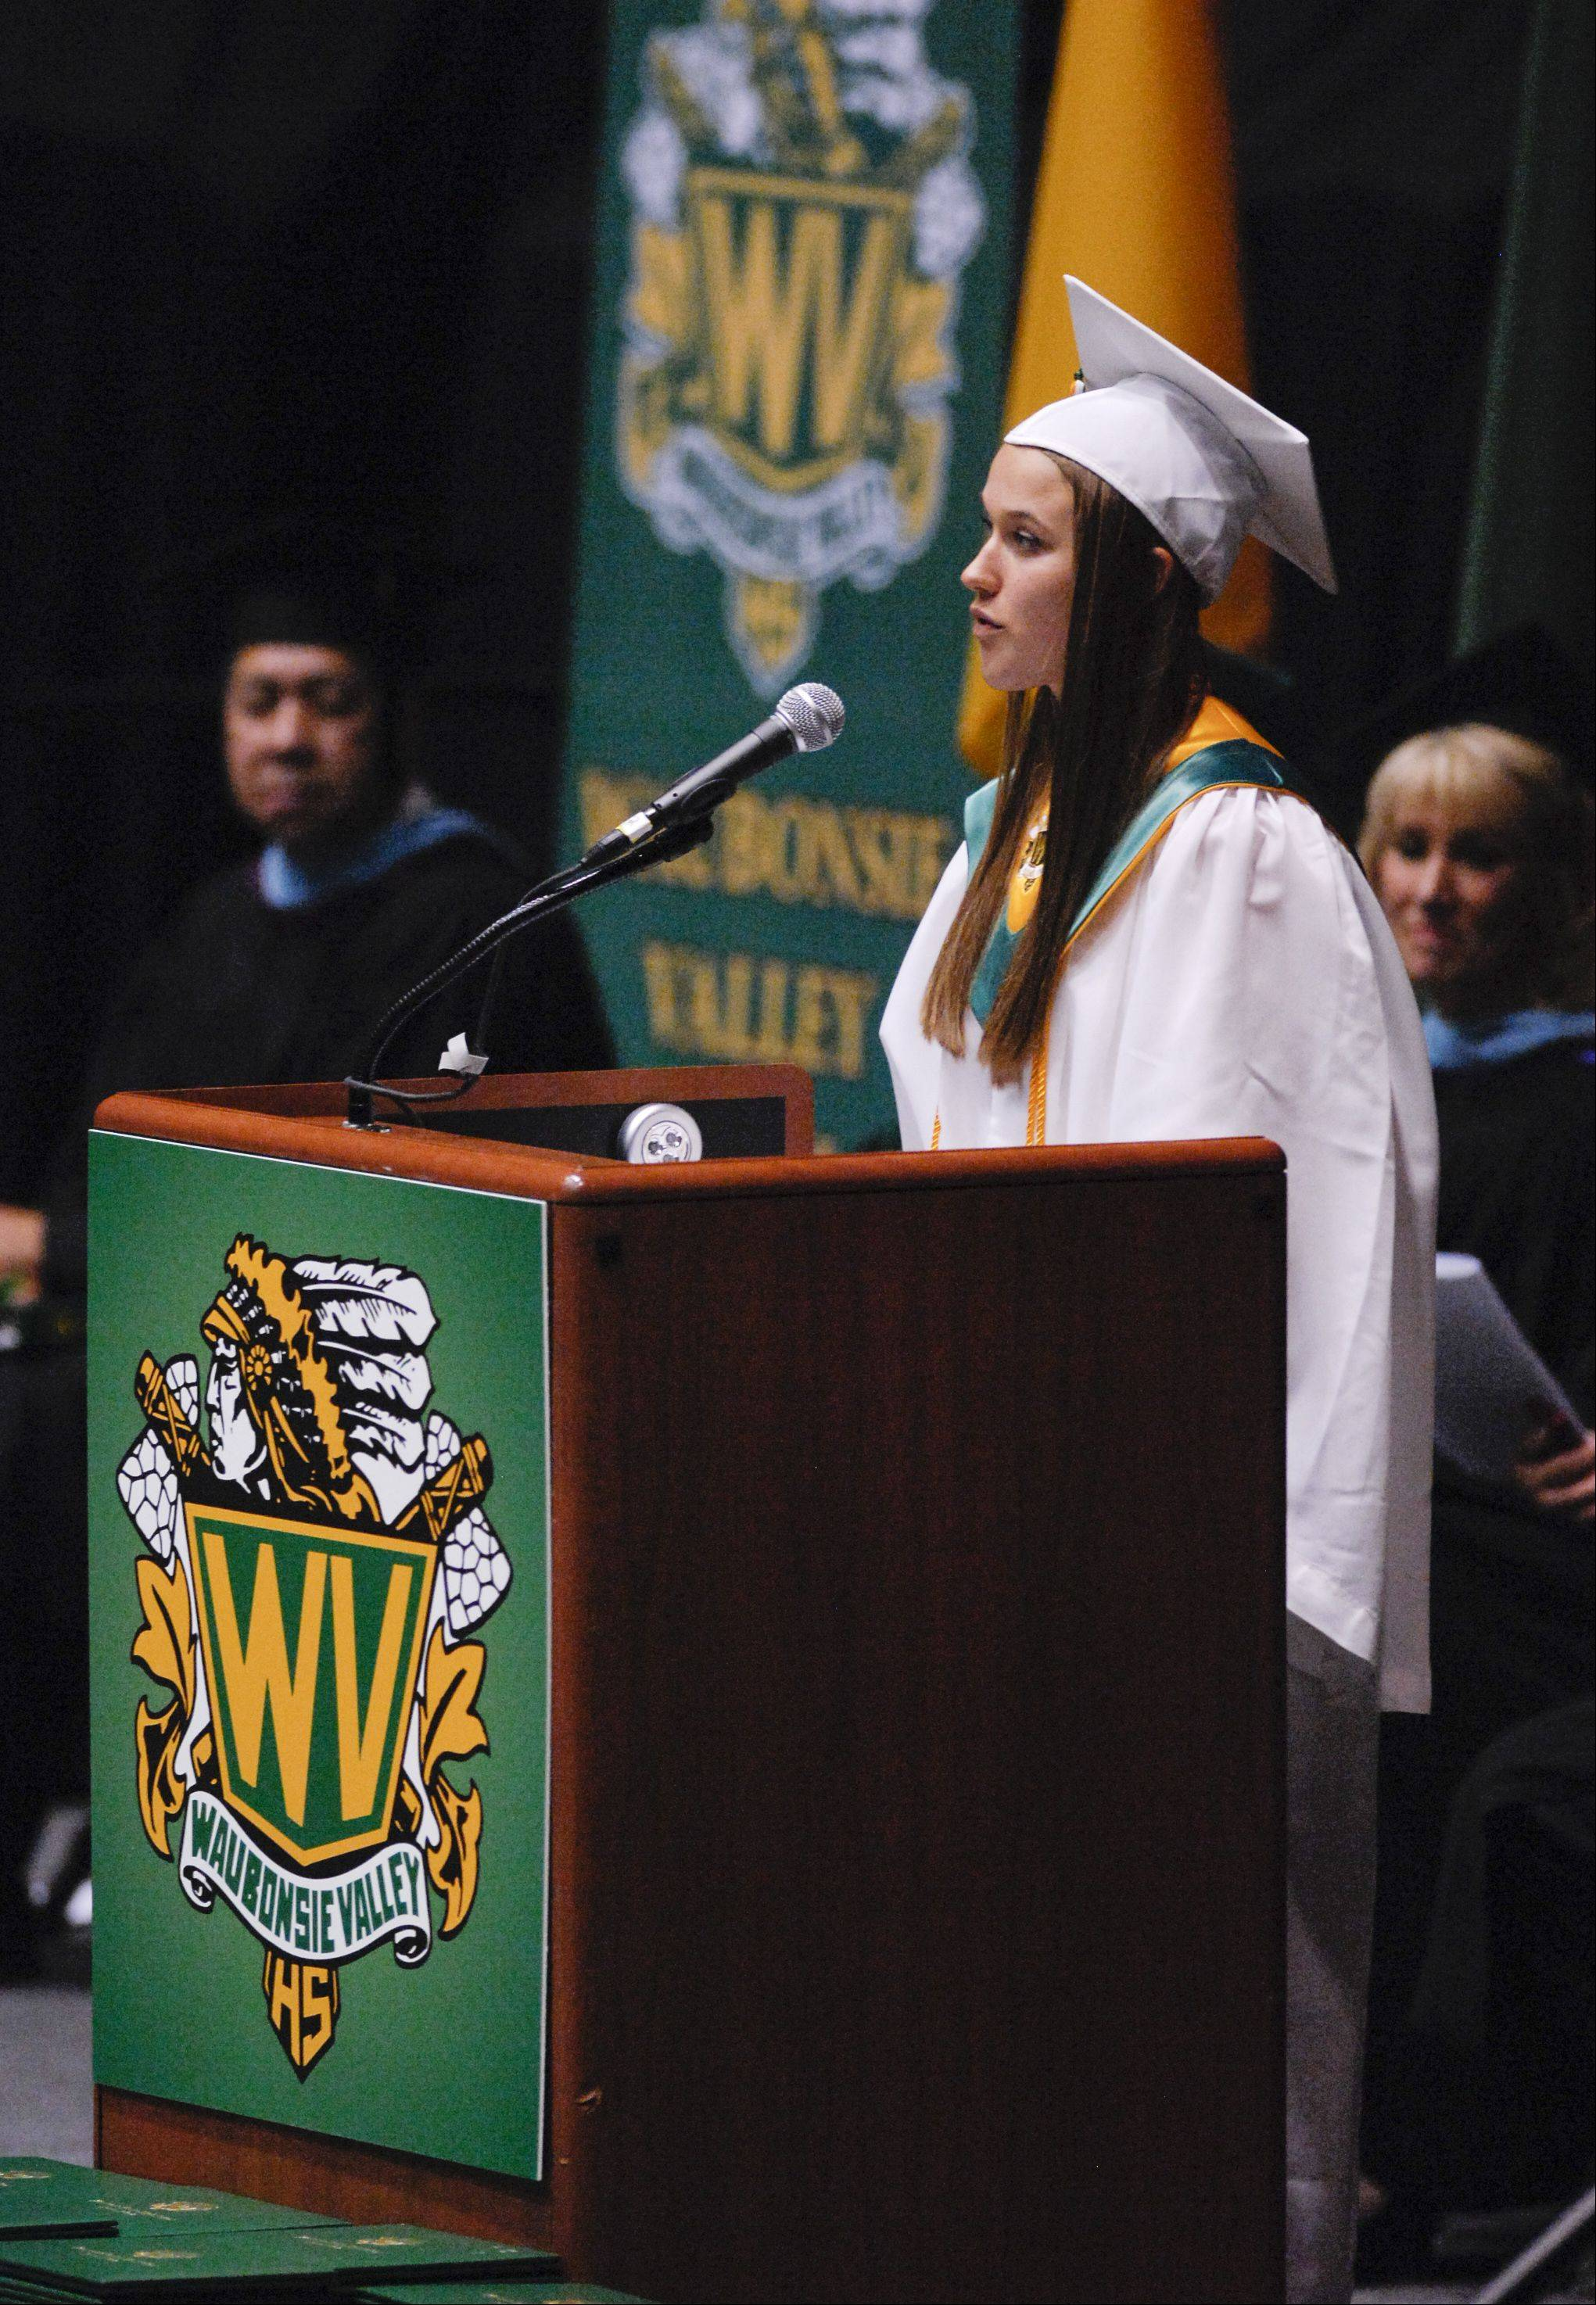 Images from the Waubonsie Valley High School graduation on Sunday, May 26 at the NIU Convocation Center in DeKalb.